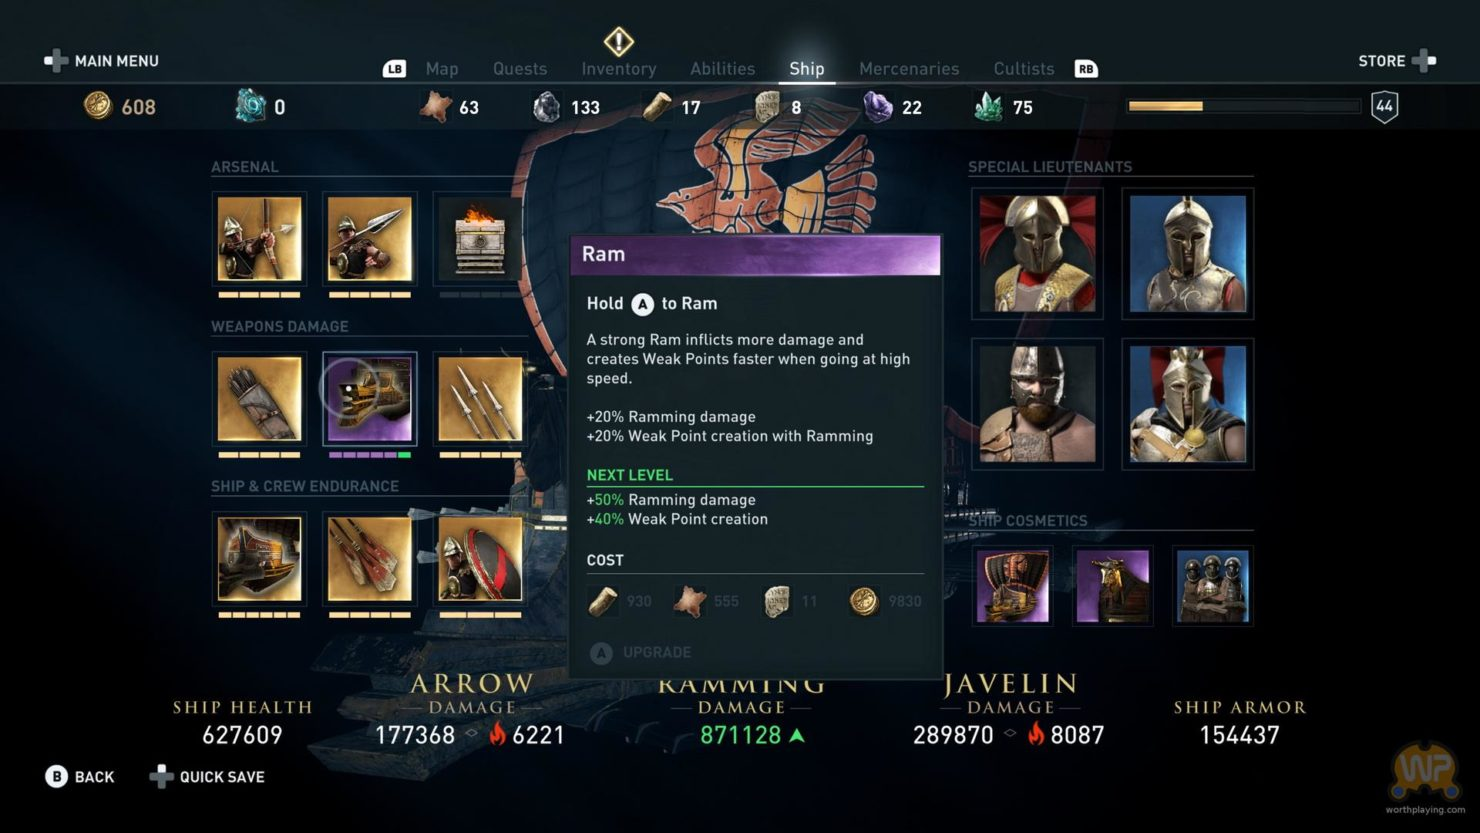 Assassin's Creed Odyssey inventaire personnage avec description objet